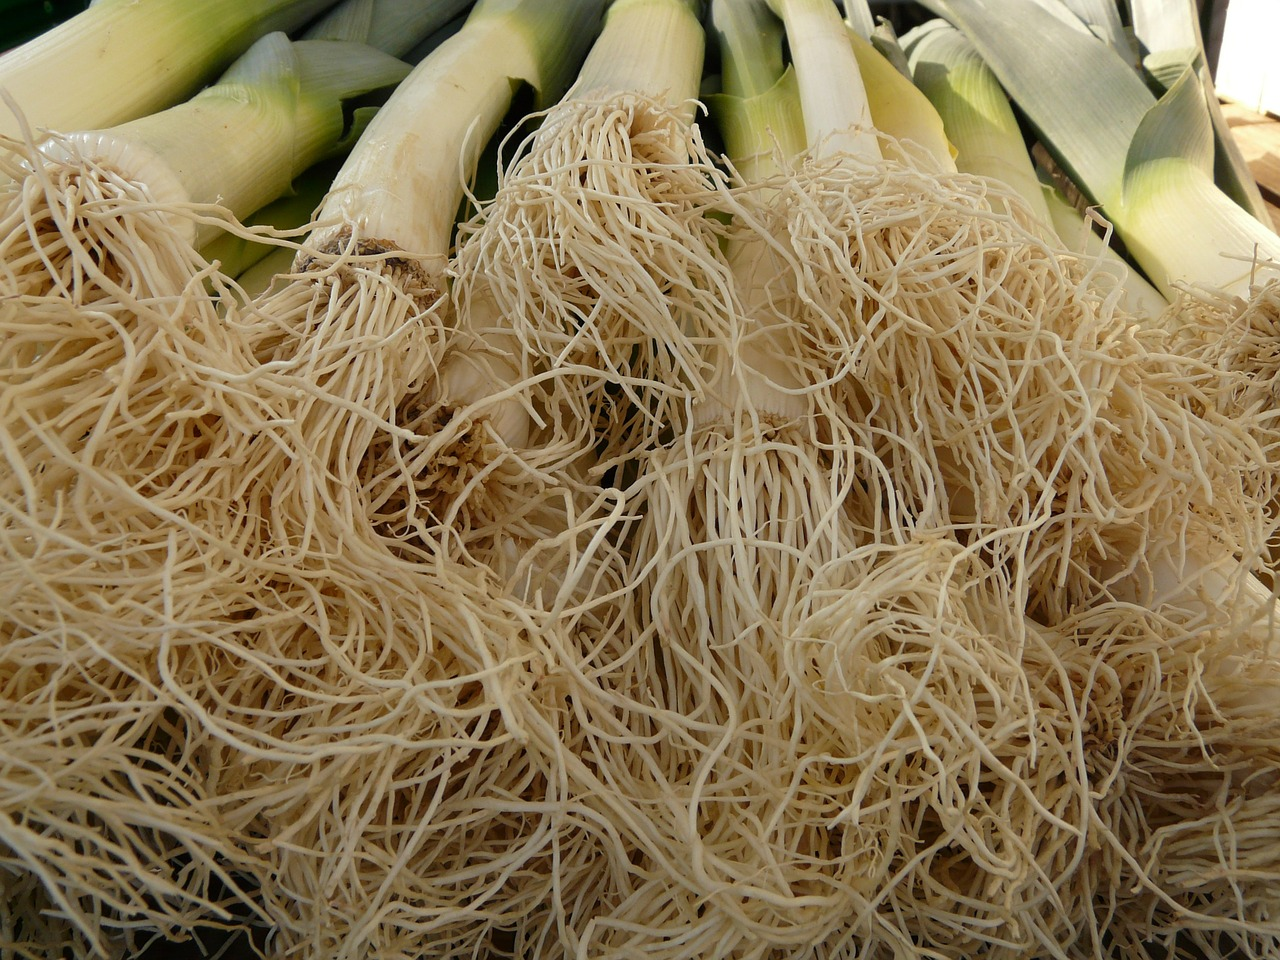 leek vegetables root free photo